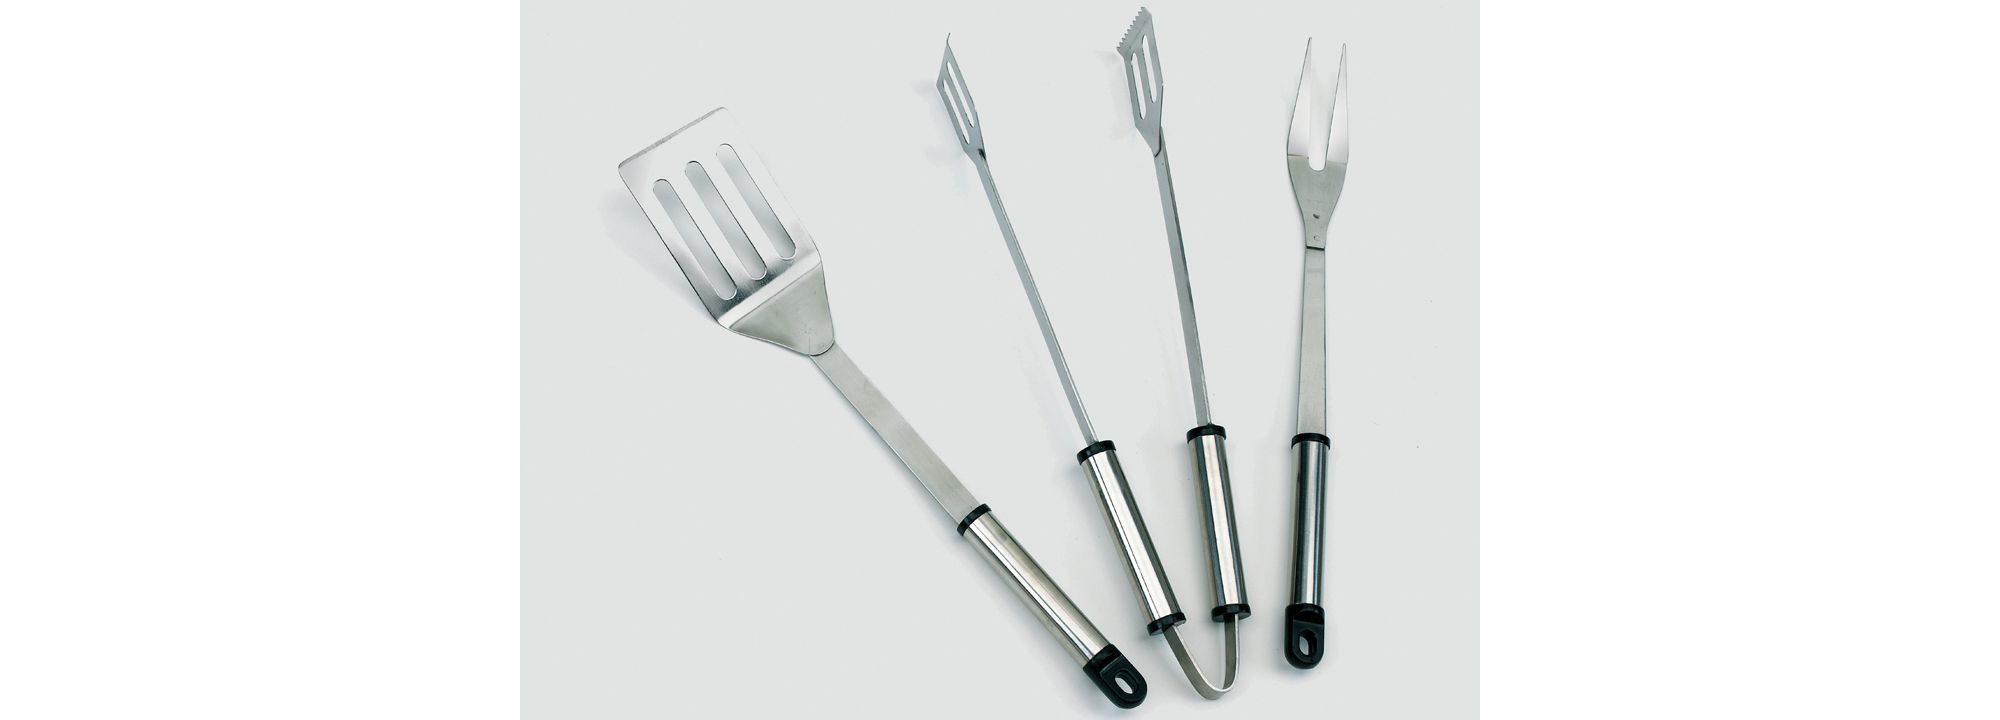 Tesco marlow single fork